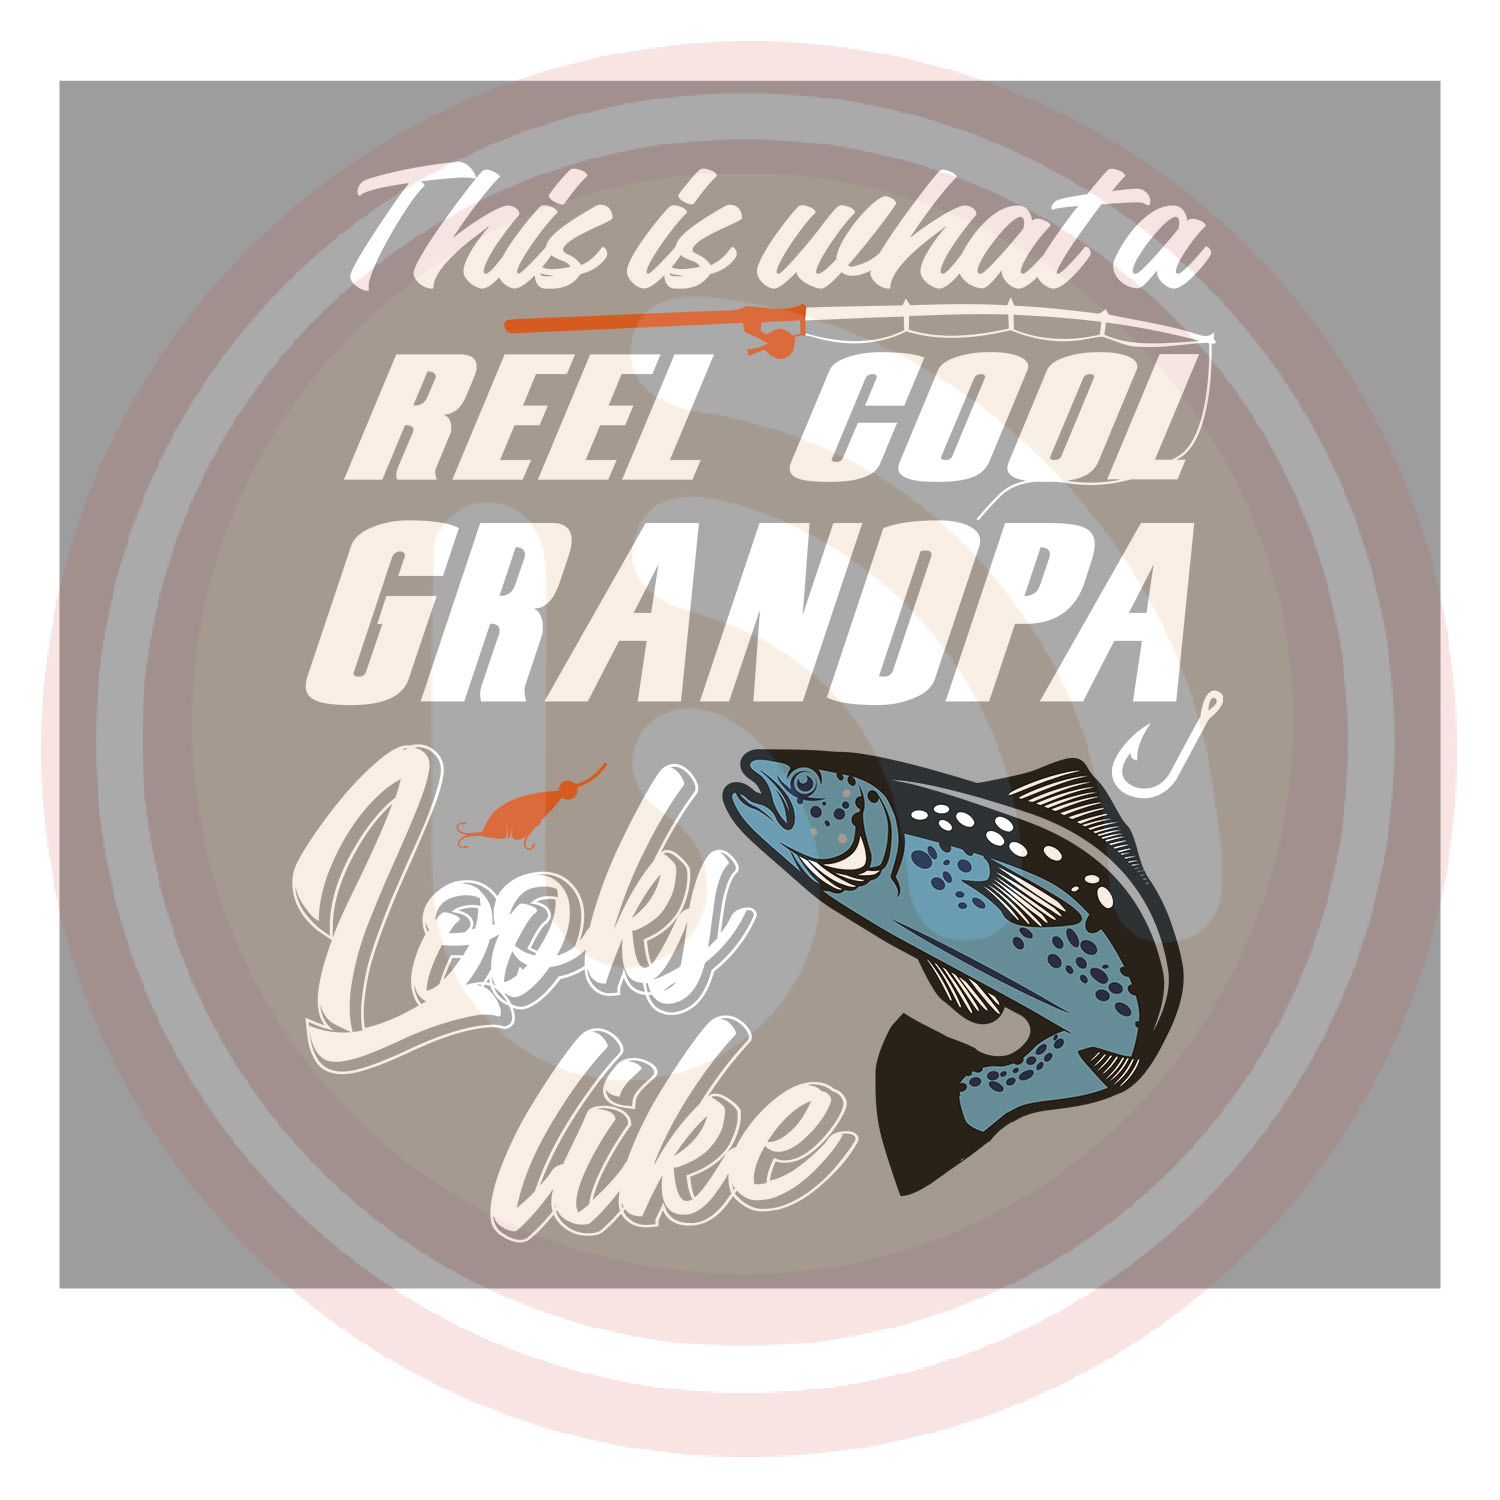 Download This Is What A Reel Cool Grandpa Looks Like Svg Grandpa Shirt Svgbuzz